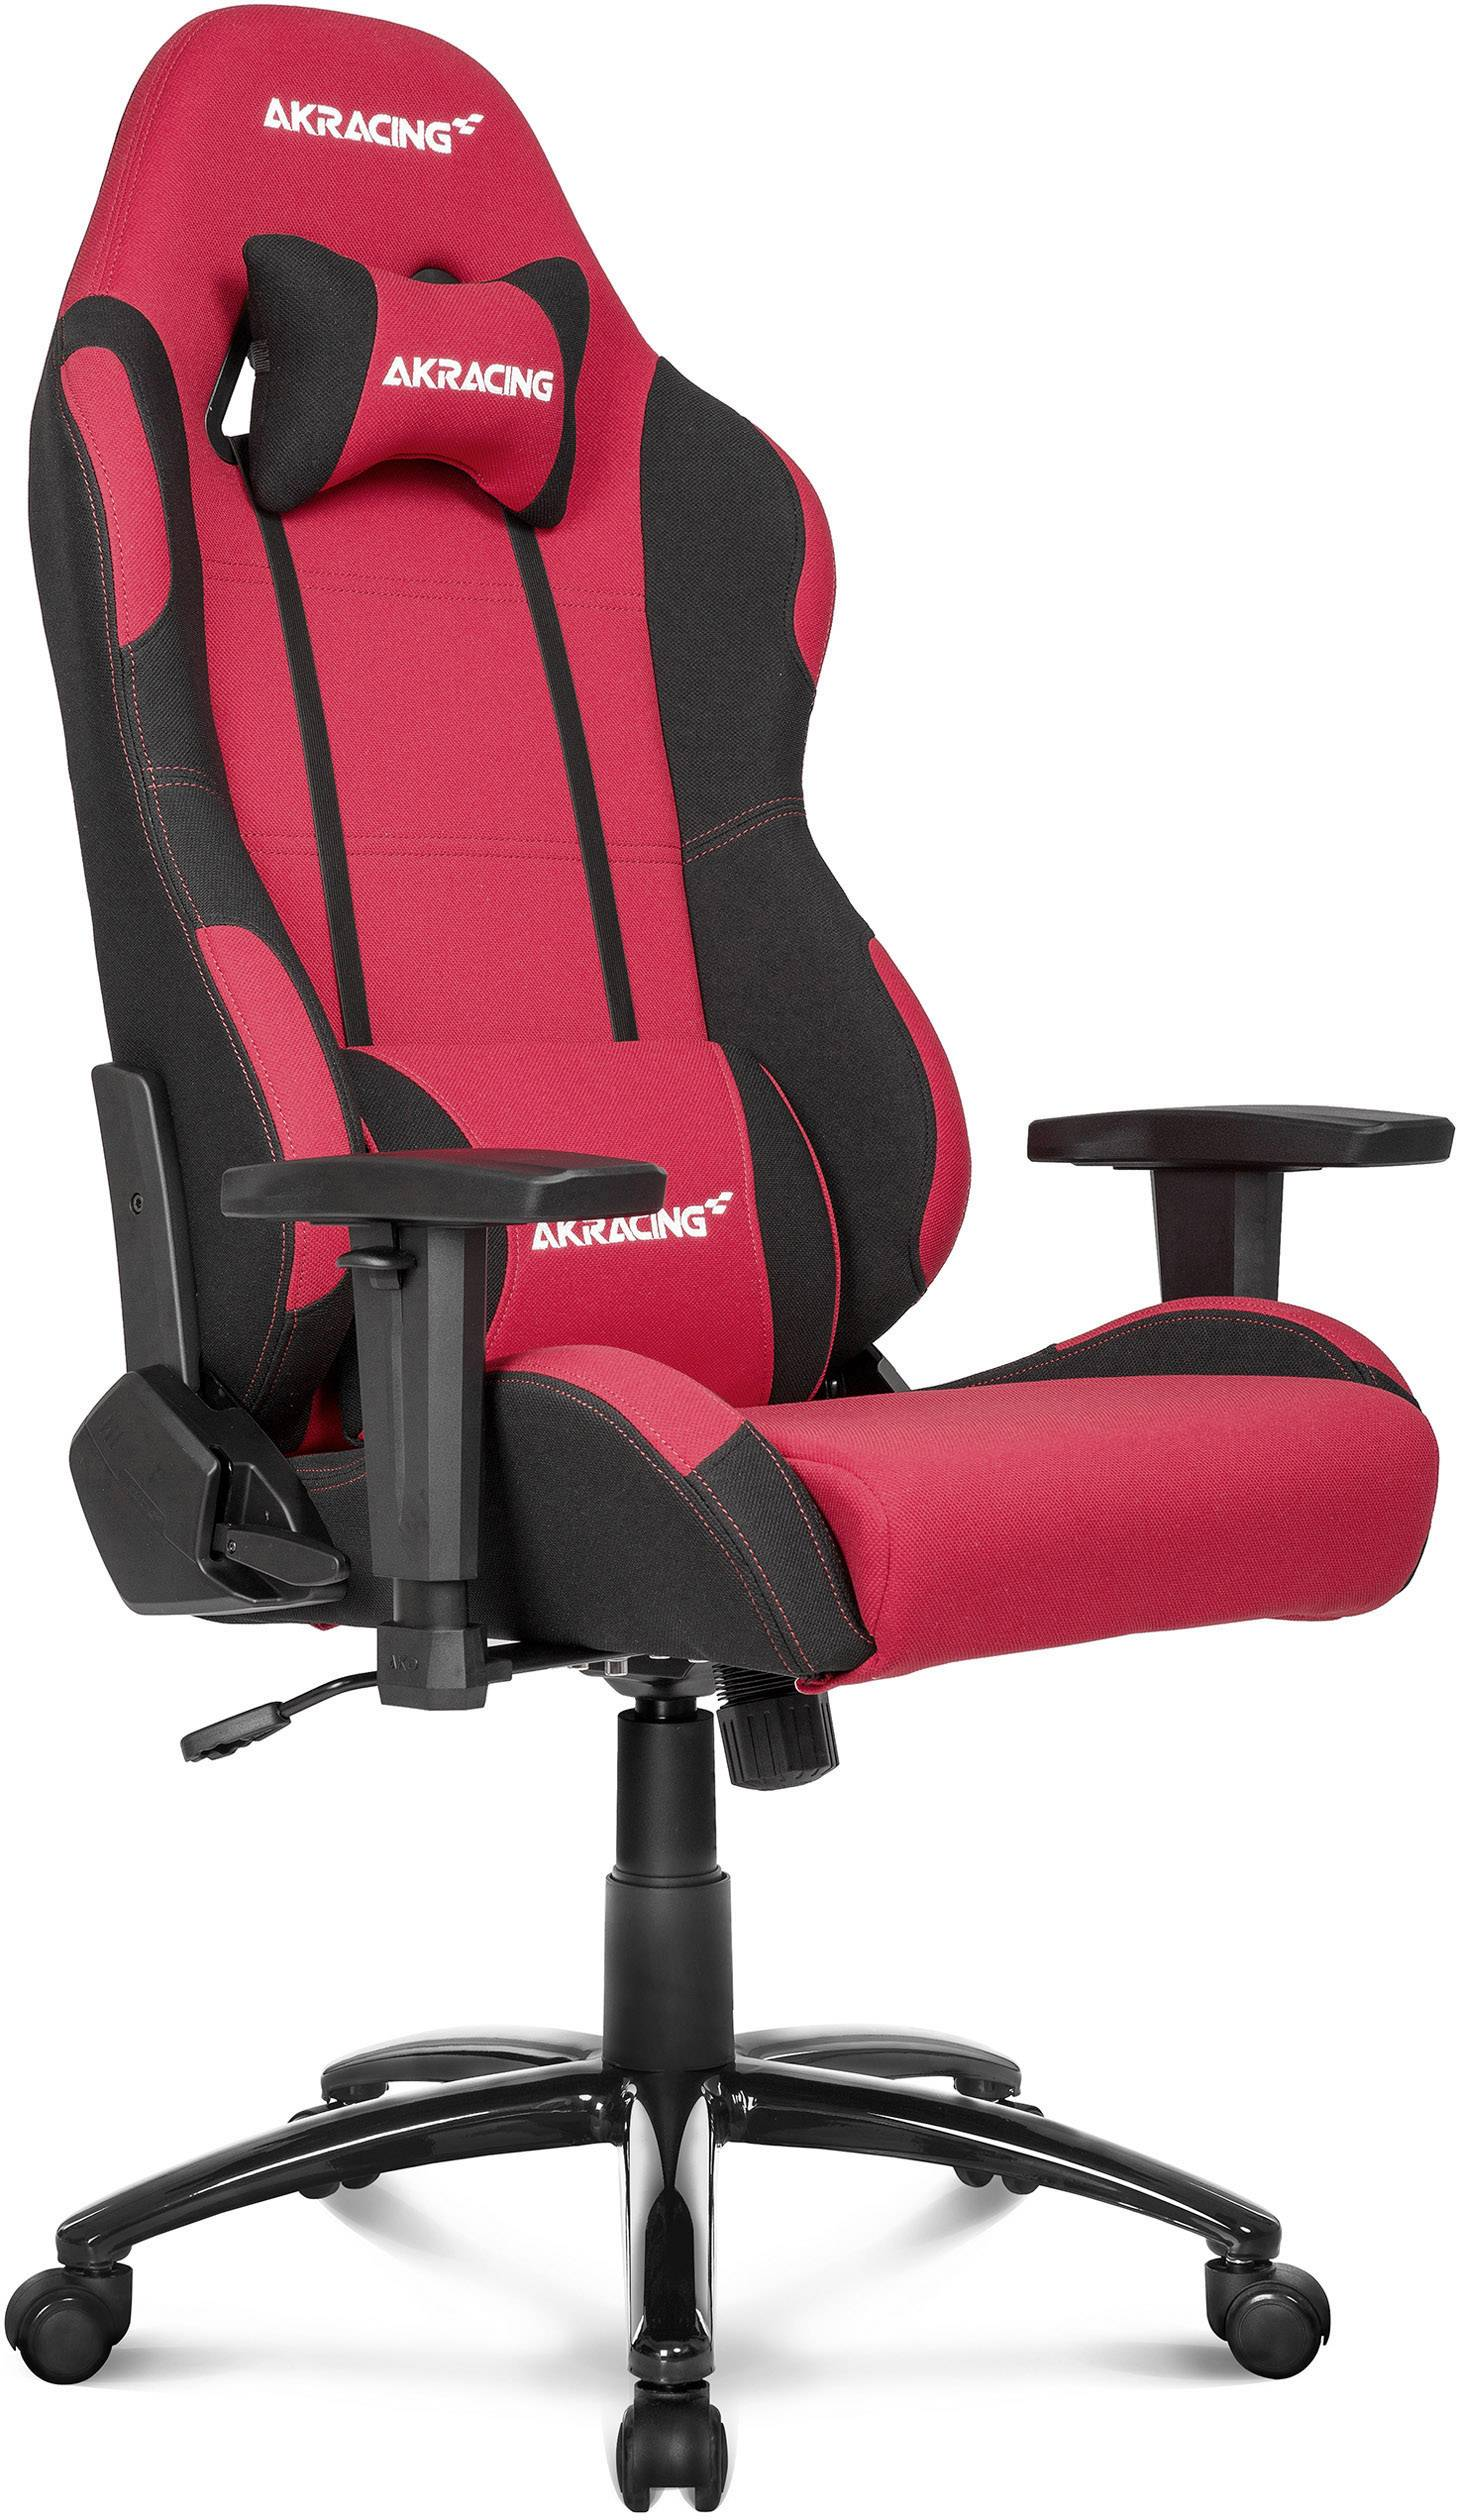 Fauteille Gamer Akracing Core Ex Wide Gaming Stoel Rood Zwart